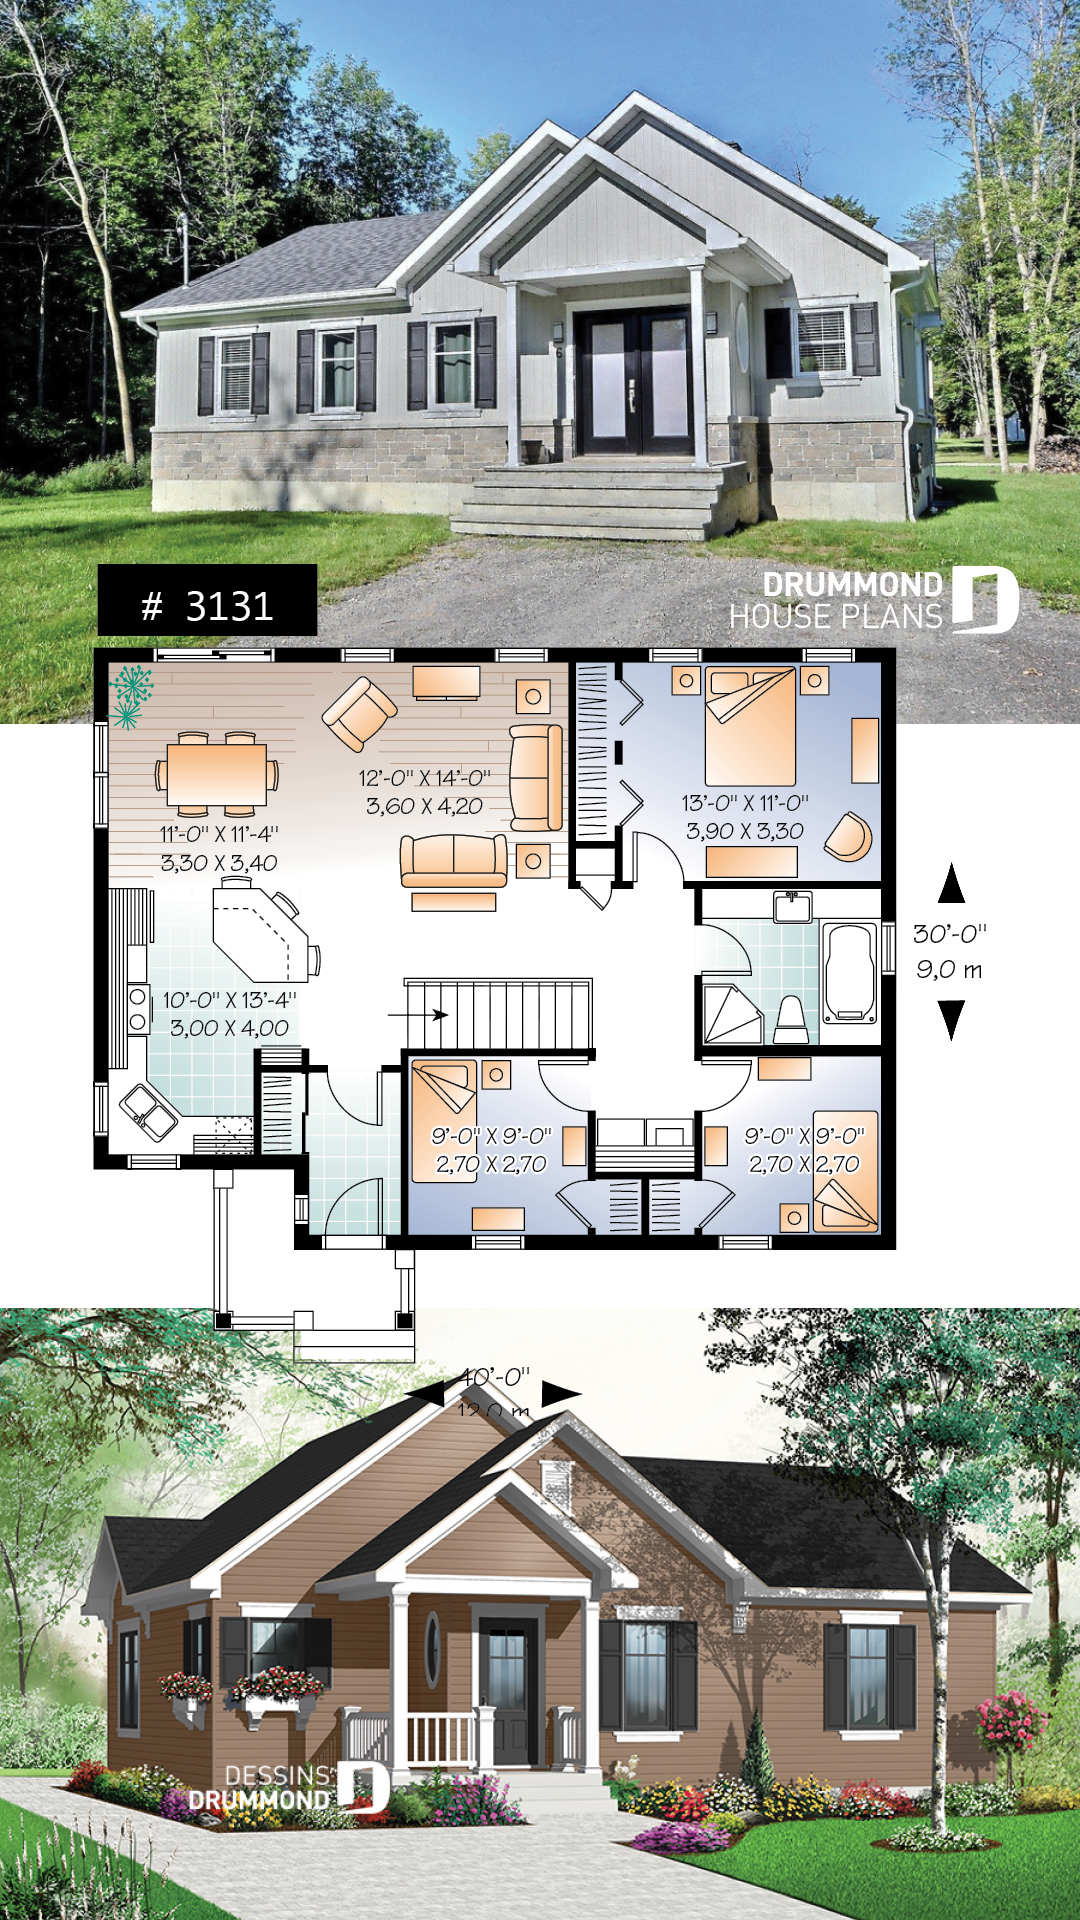 Discover The Plan 3131 Erindale Which Will Please You For Its 3 Bedrooms And For Its Country Styles Affordable House Plans Bungalow Floor Plans Cottage House Plans